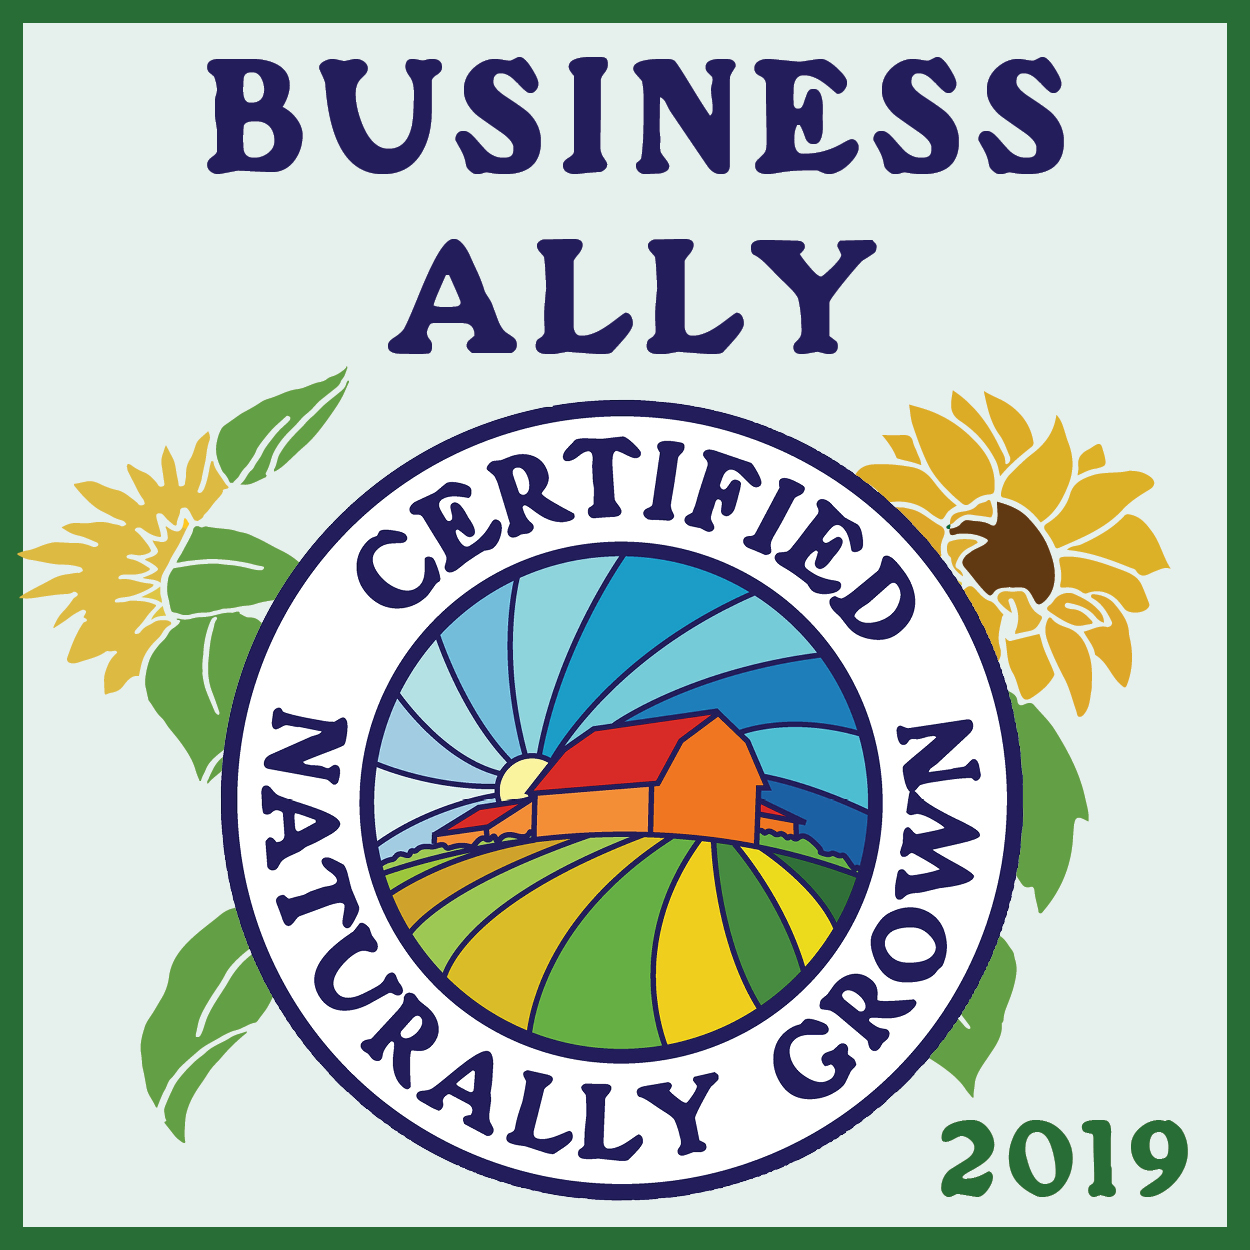 Business Ally 2019